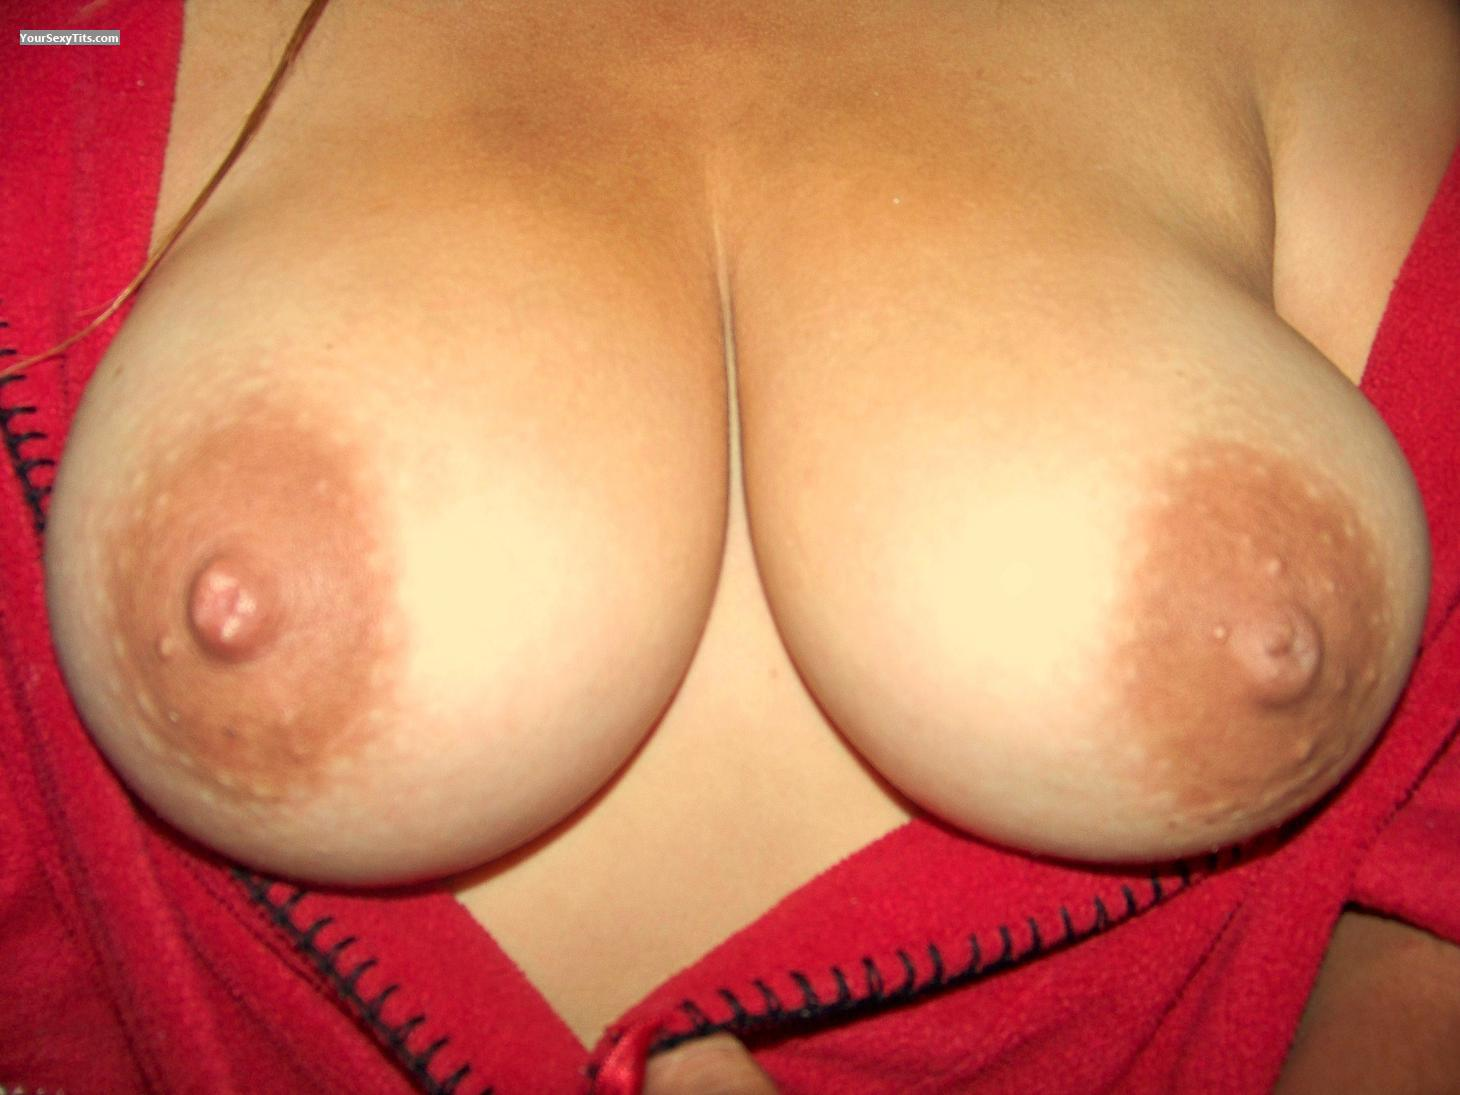 Tit Flash: Very Big Tits - Texastatas from United States